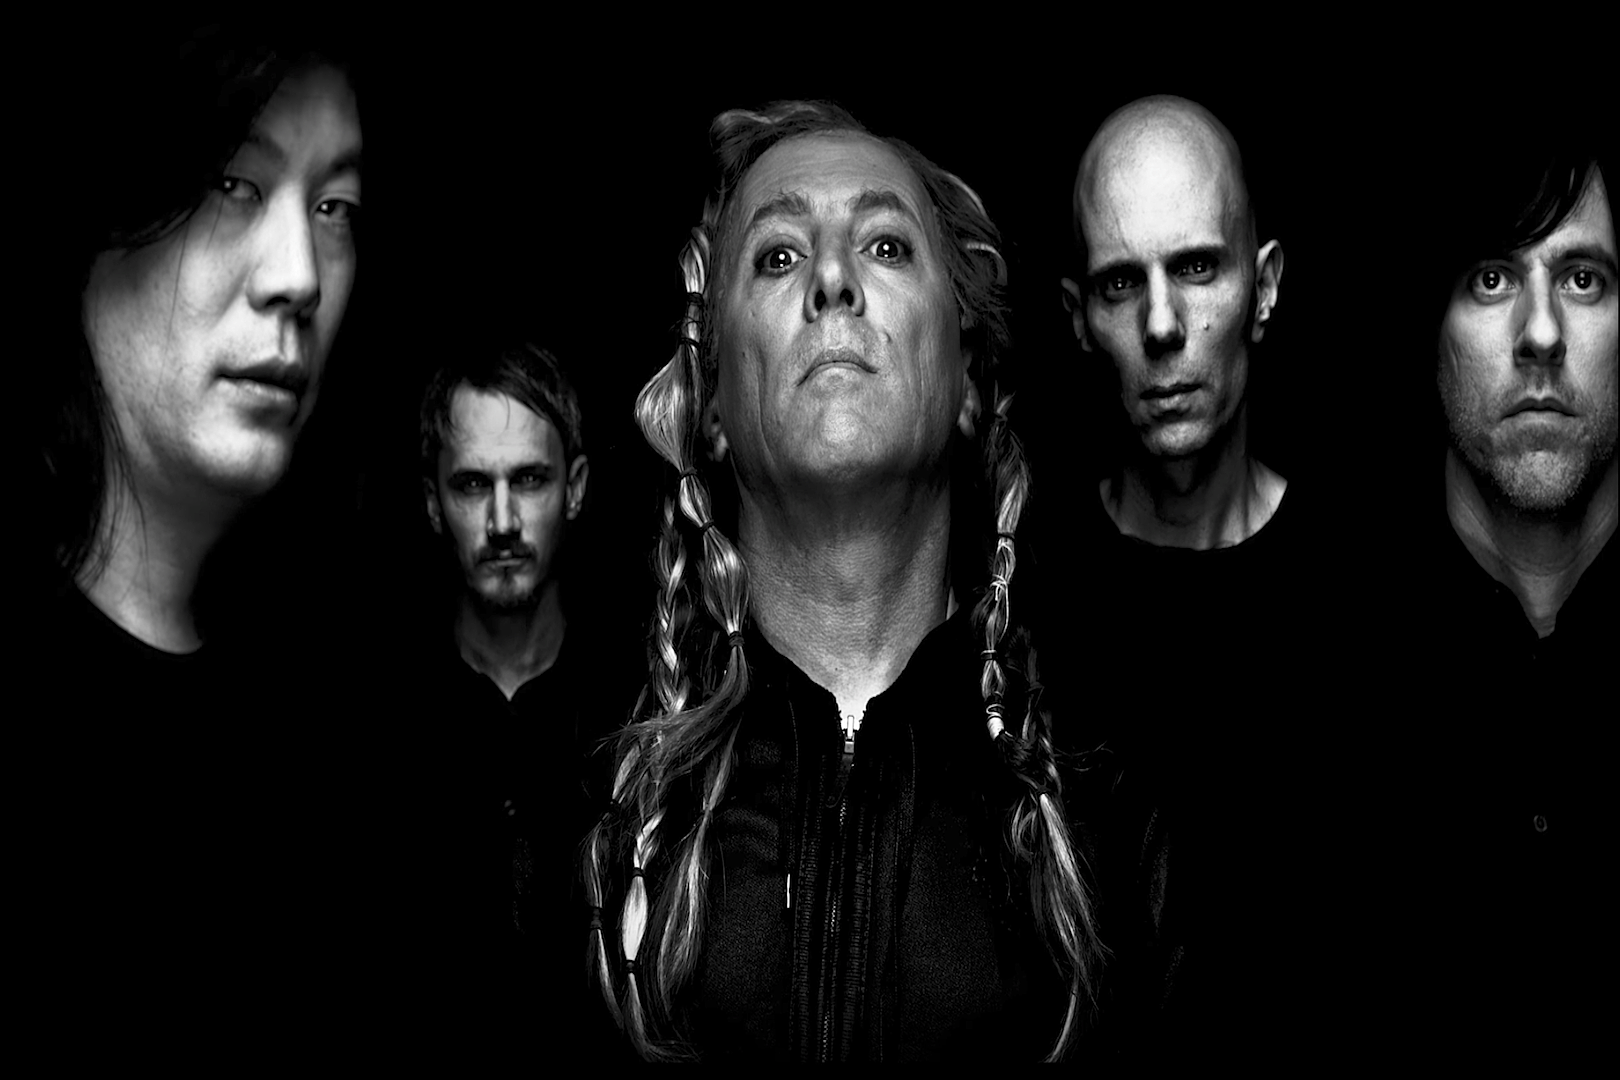 A Perfect Circle Release Intense New Video for 'The Doomed,' Defend 'No Cell Phone' Concert Policy